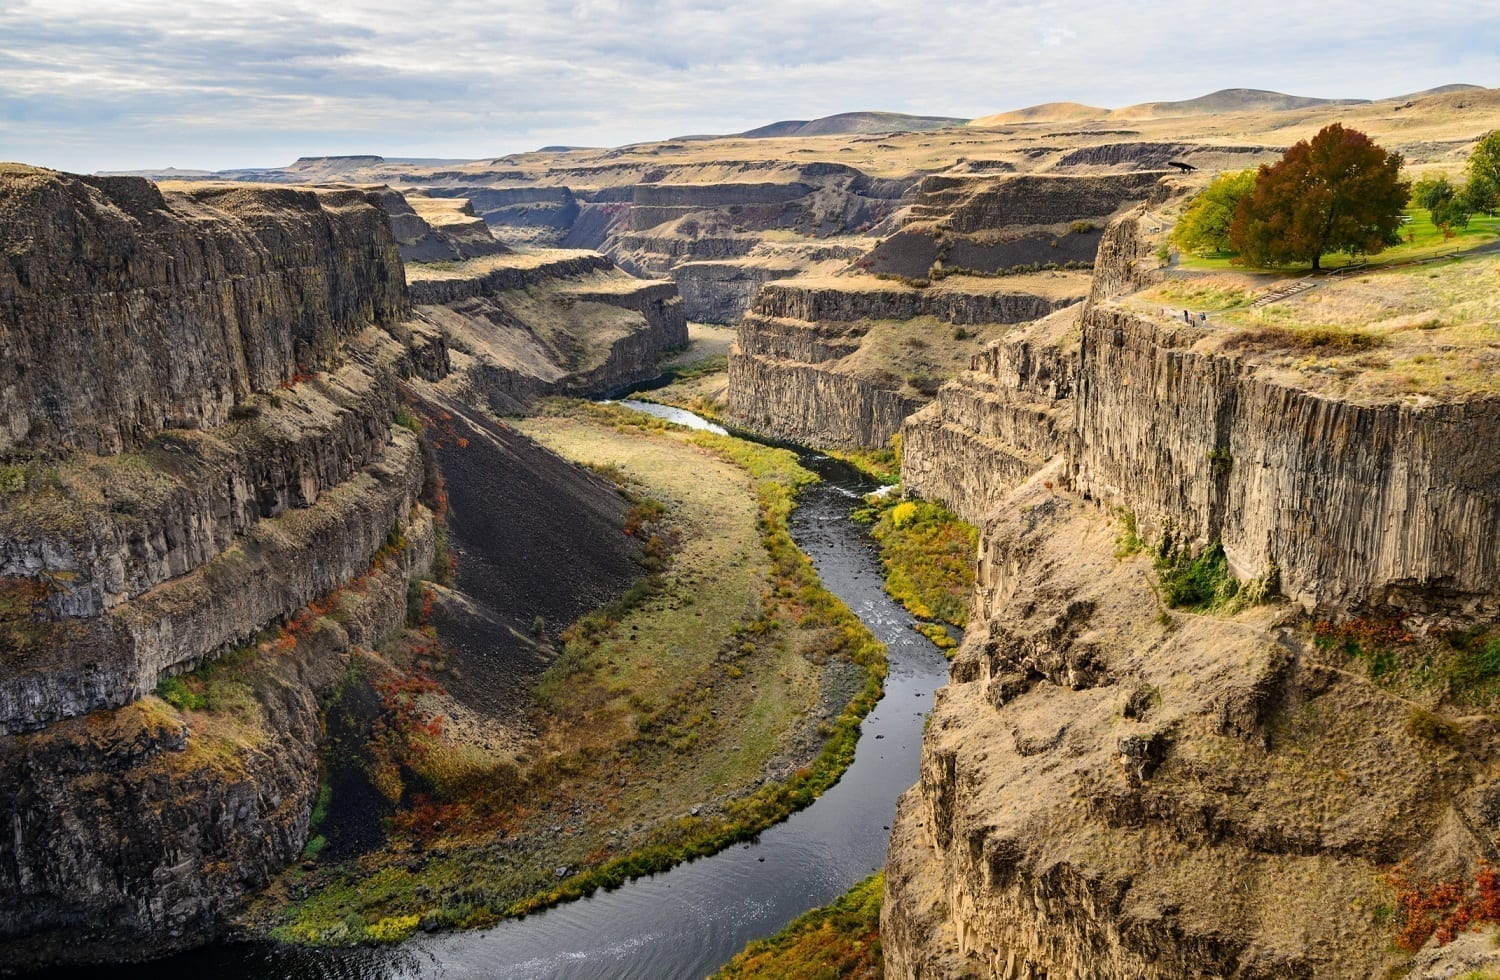 Missoula channeled scablands Palouse Falls State Park: ID 61141897 © Zrfphoto | Dreamstime.com